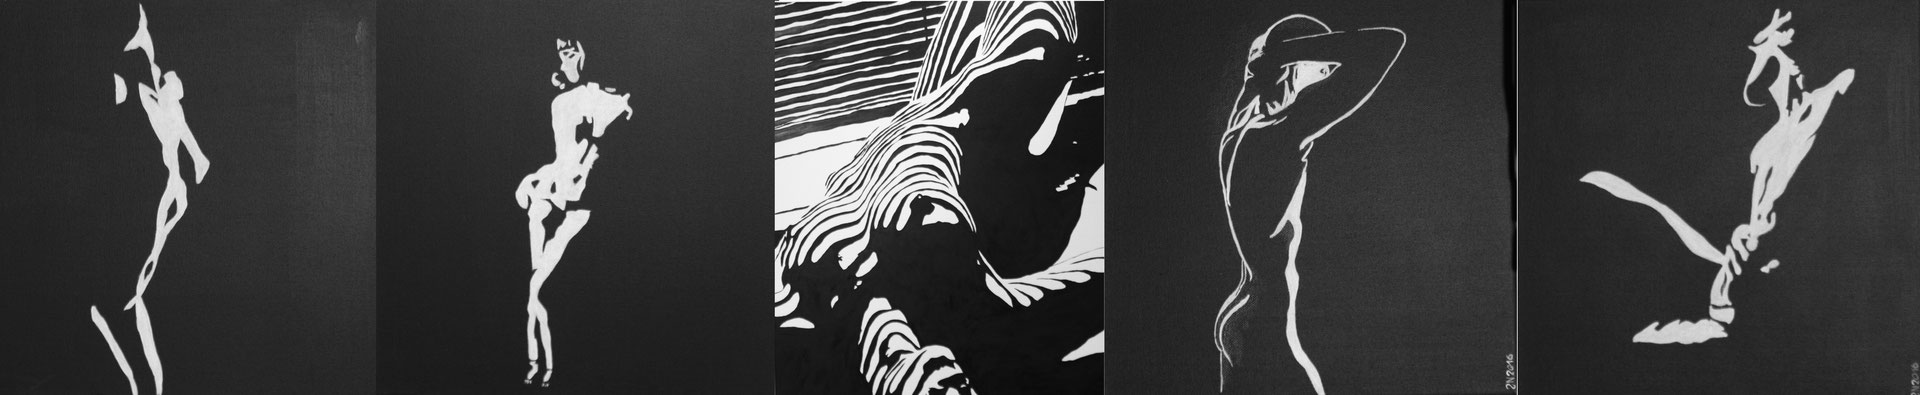 ZEBRAWOMAN  Acrylpainting on canvas, ca. 100 x 120 cm